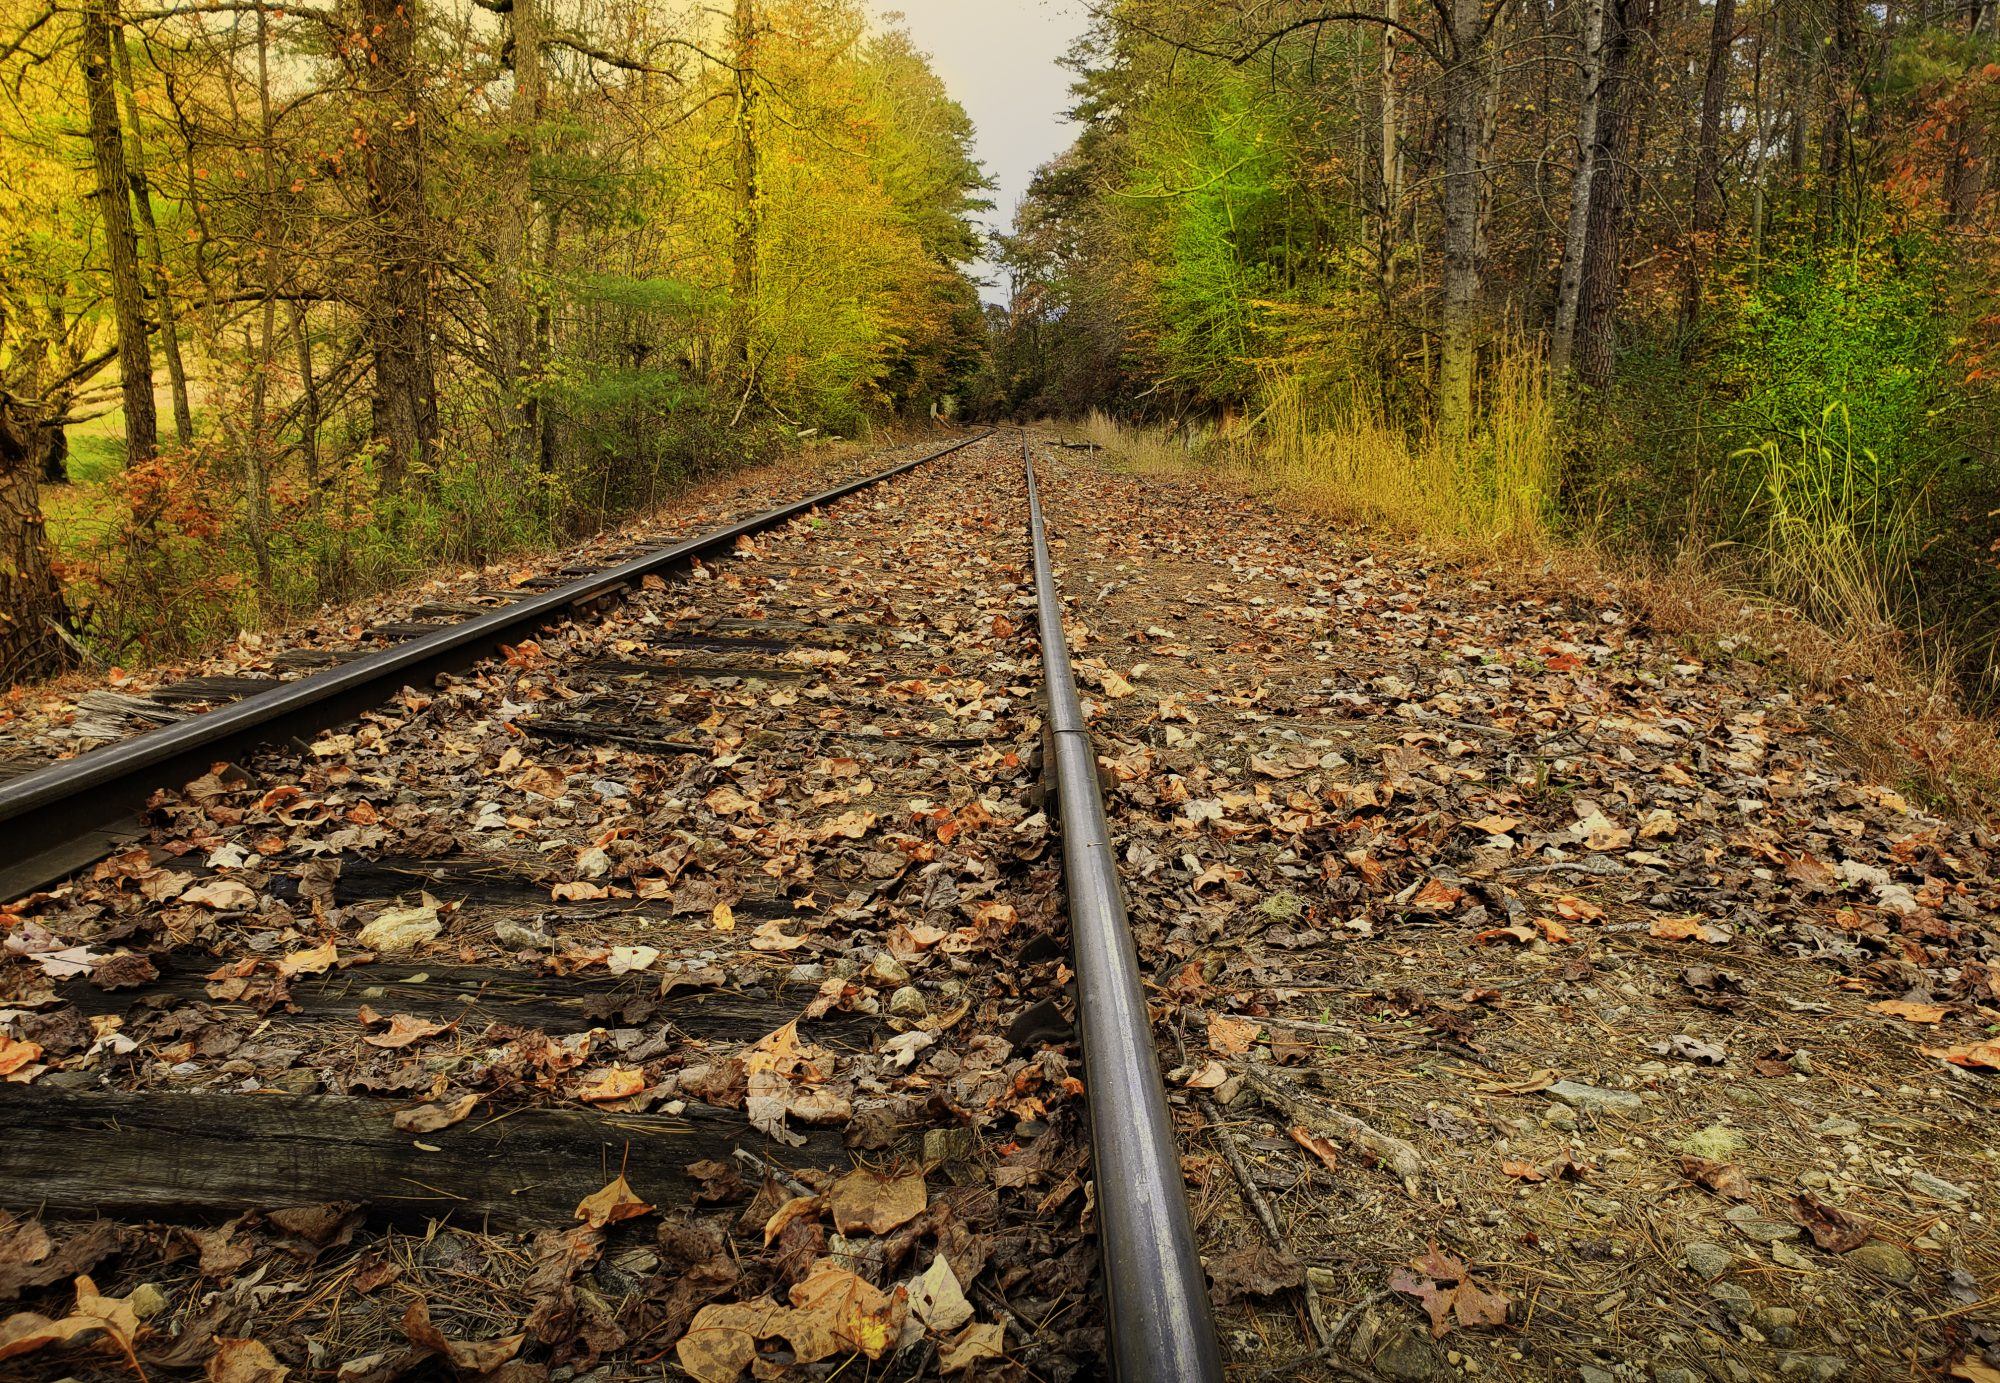 Railroad Tracks on an Autumn Day in the Appalachian Mountains - Fallen Leaves